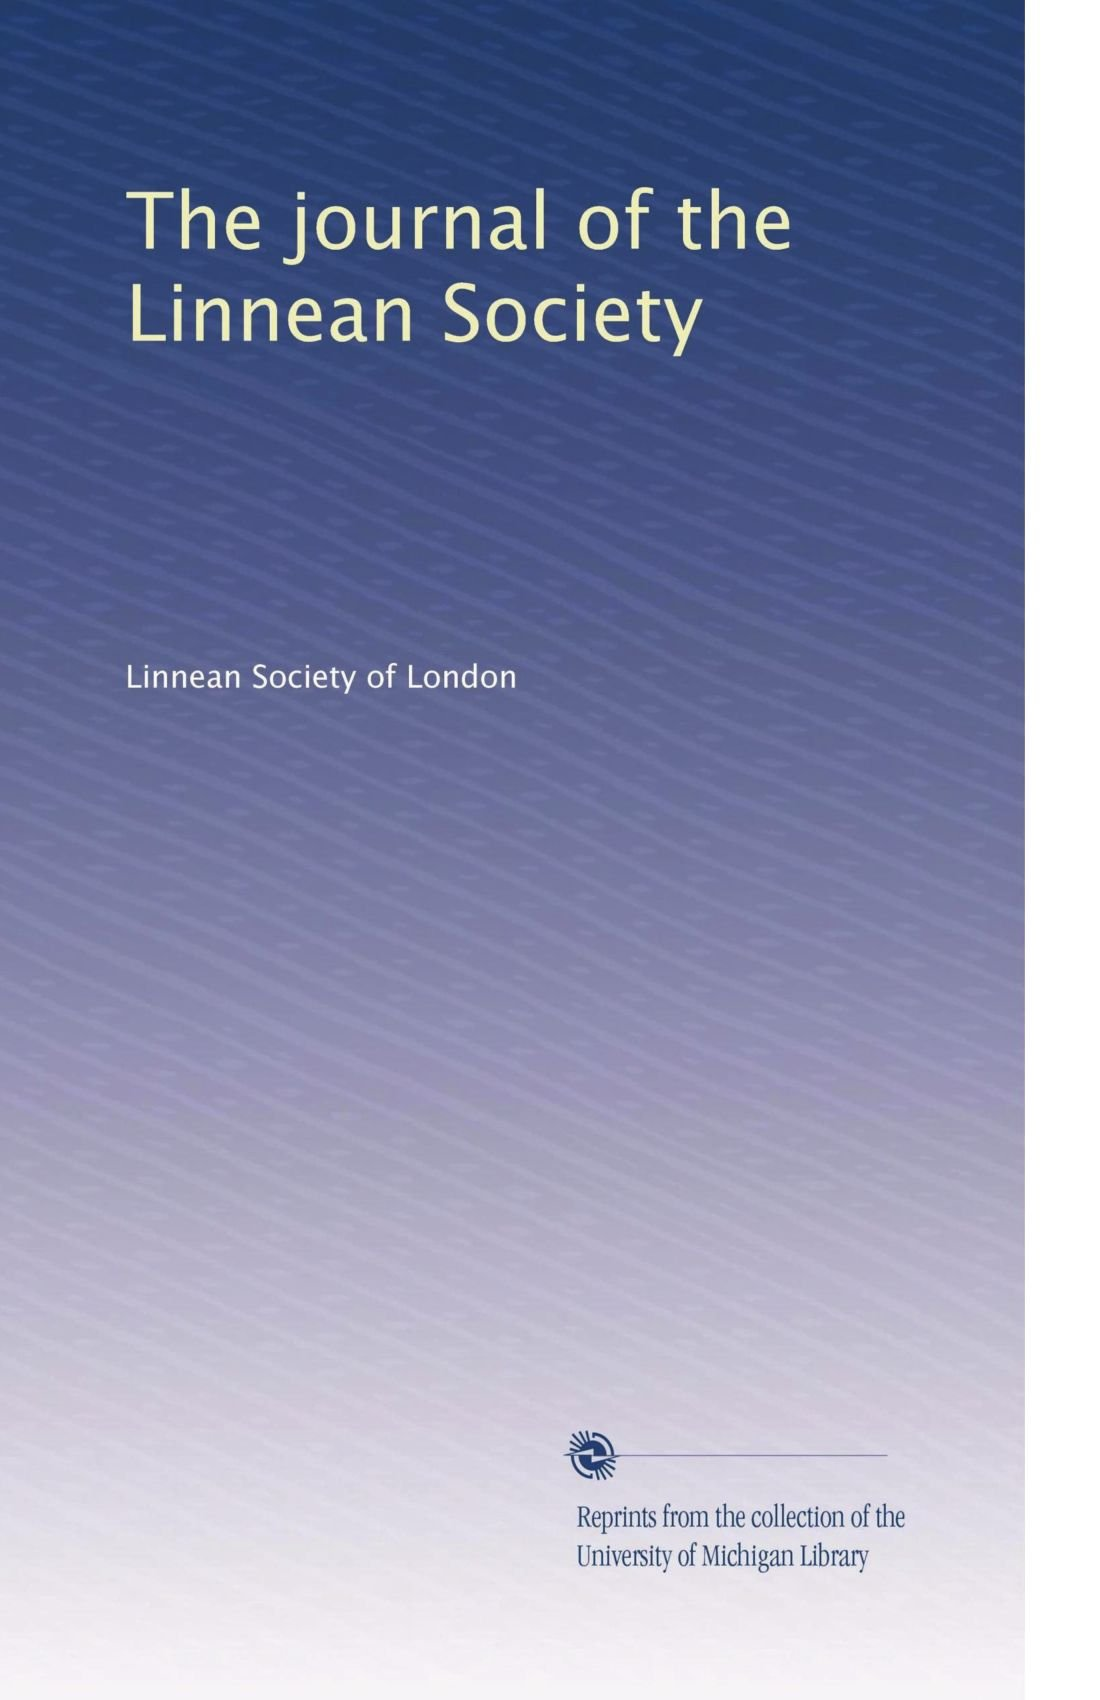 Download The journal of the Linnean Society pdf